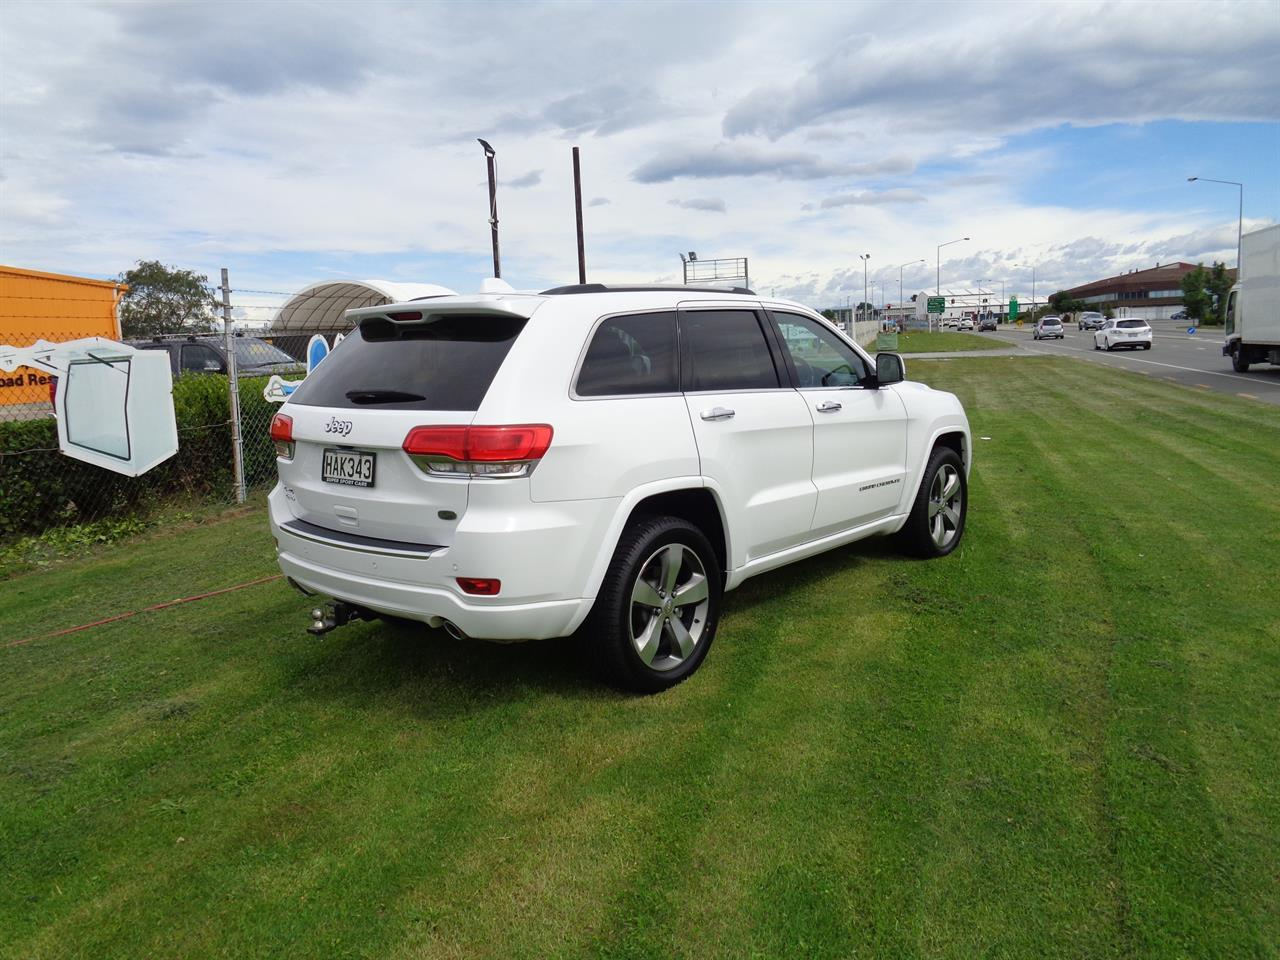 image-6, 2013 Jeep Grand Cherokee 3.0L V6 CRD OVERLAND at Christchurch